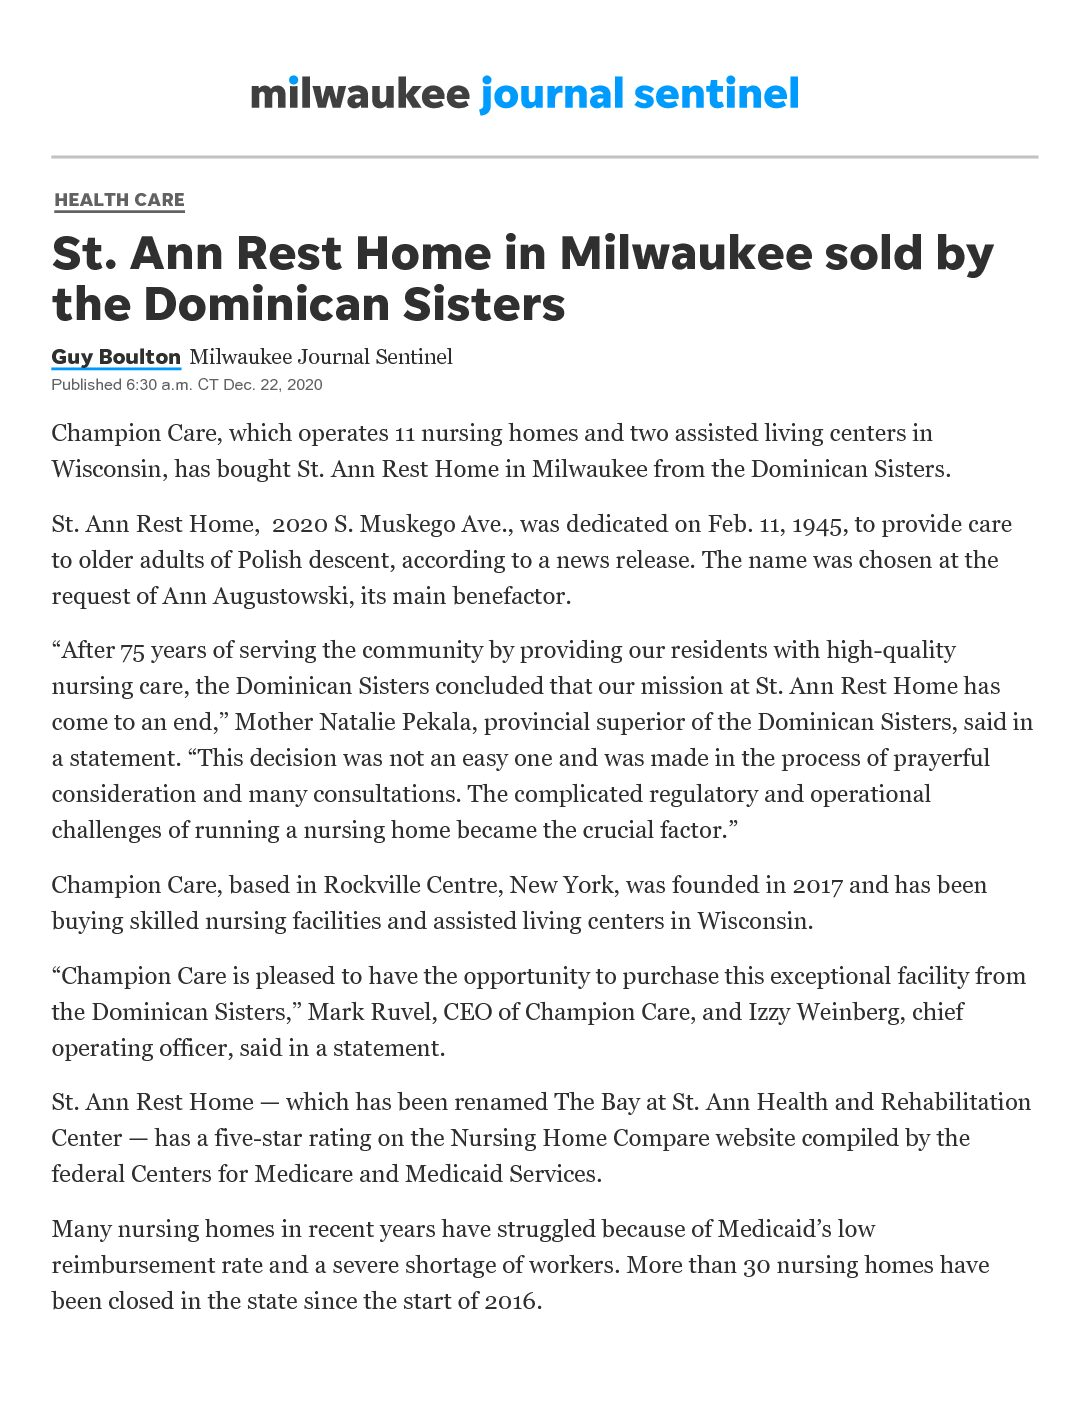 Champion Care buys St. Ann Rest Home in Milwaukee from Dominican Sister